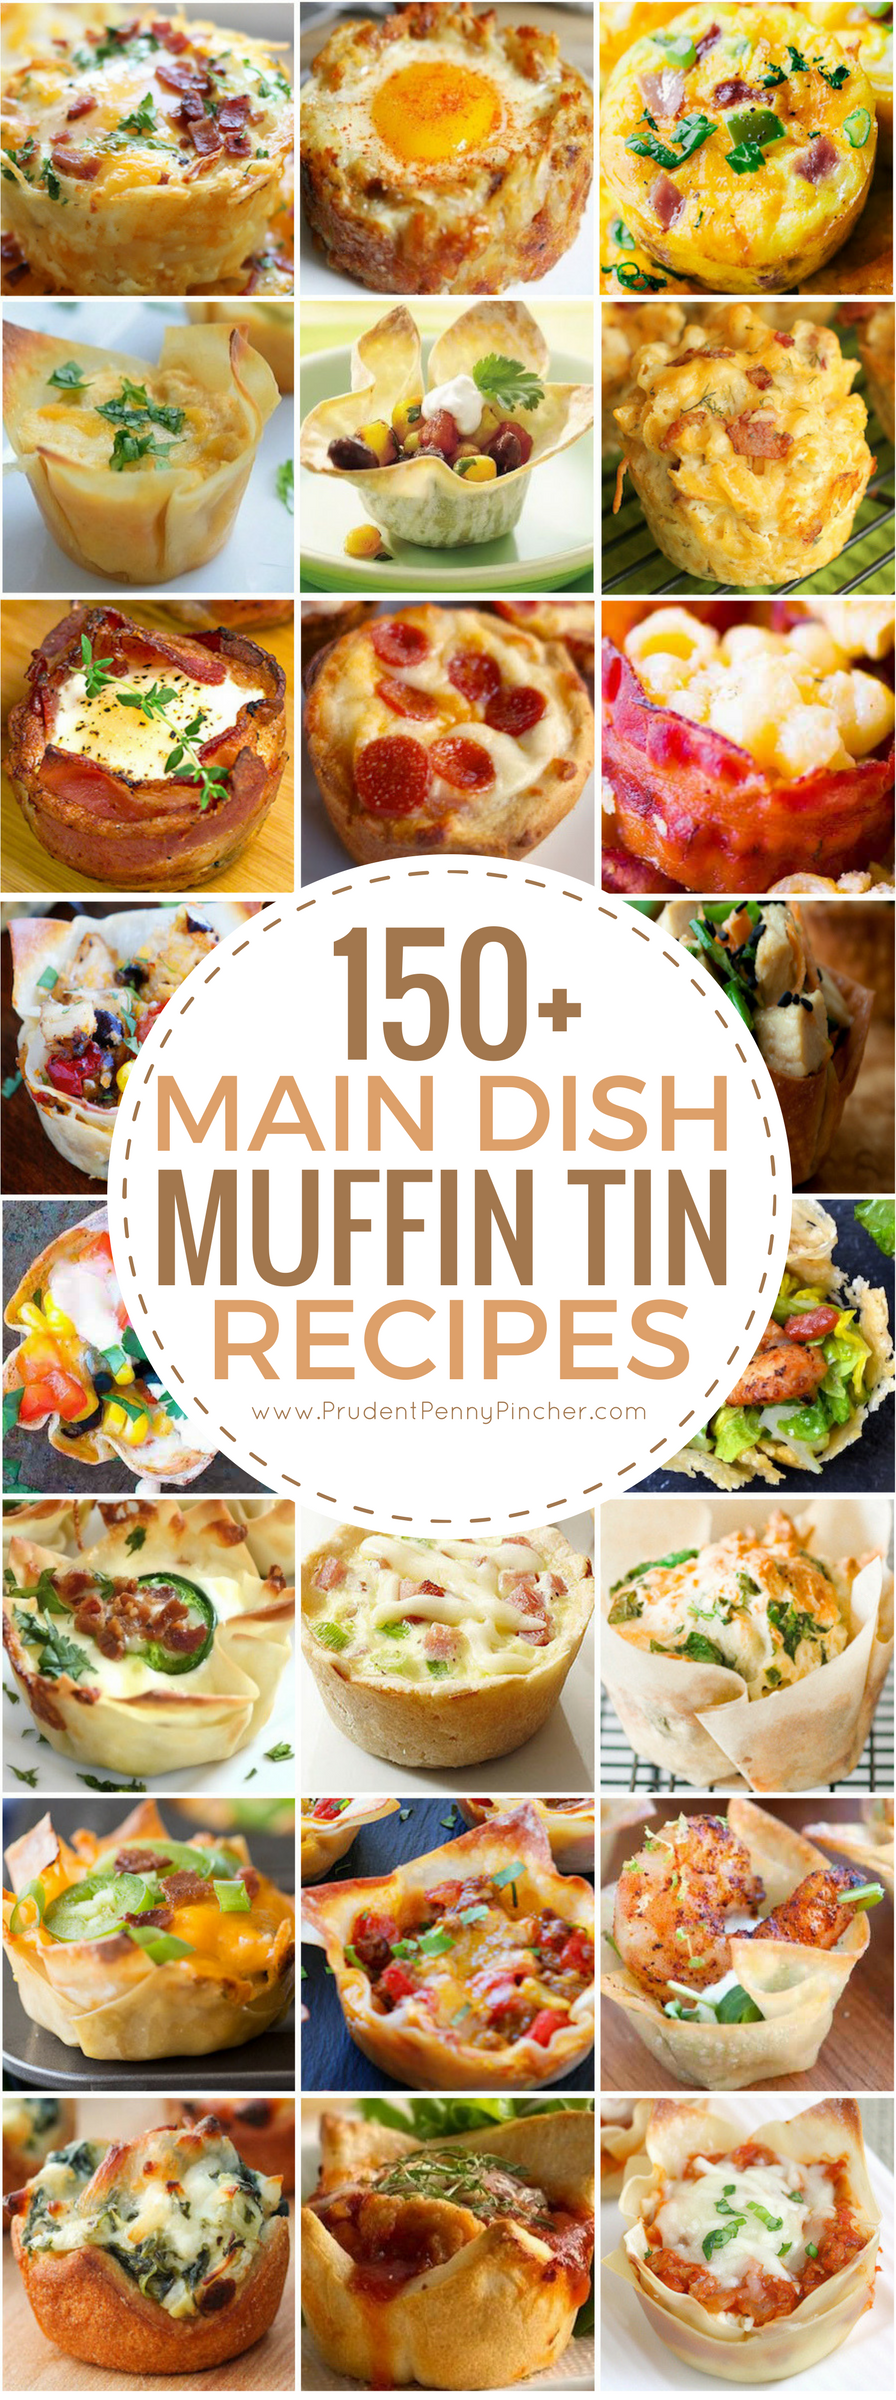 150 Main Dish Muffin Tin Recipes Prudent Penny Pincher